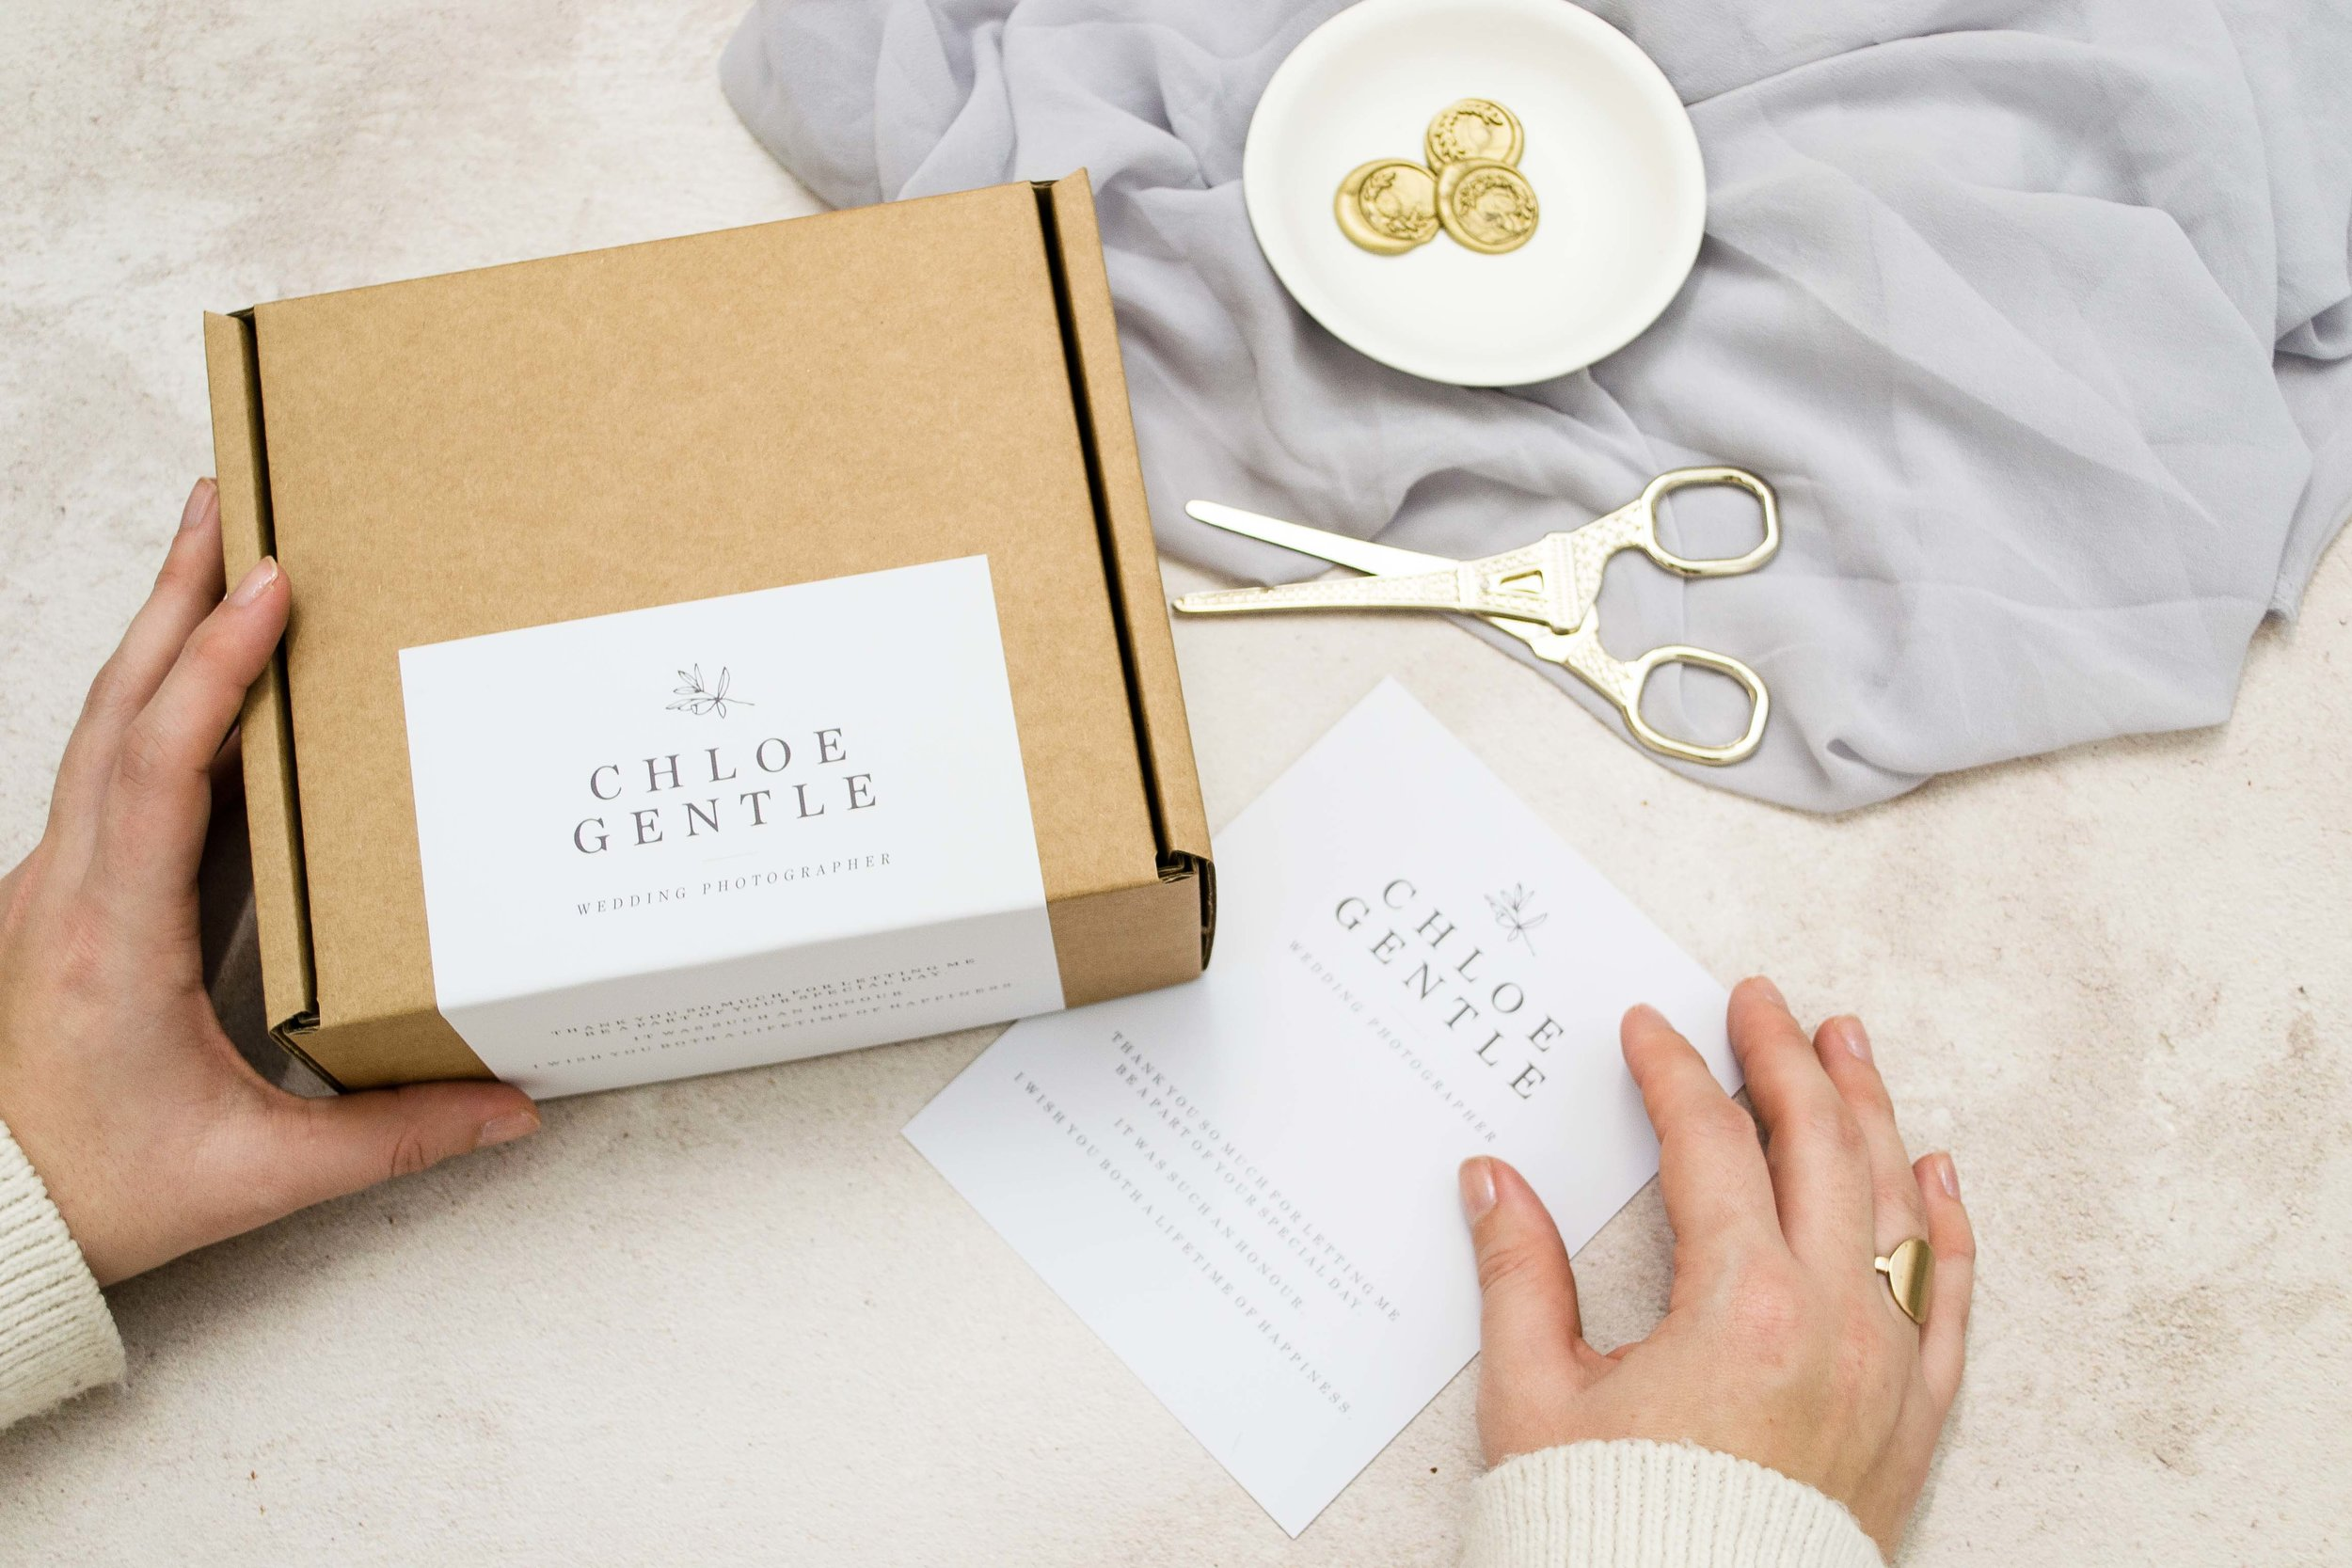 READY TO SHOP? - ENHANCE YOUR PACKAGING AESTHETIC WITH OUR CUSTOM STICKERS